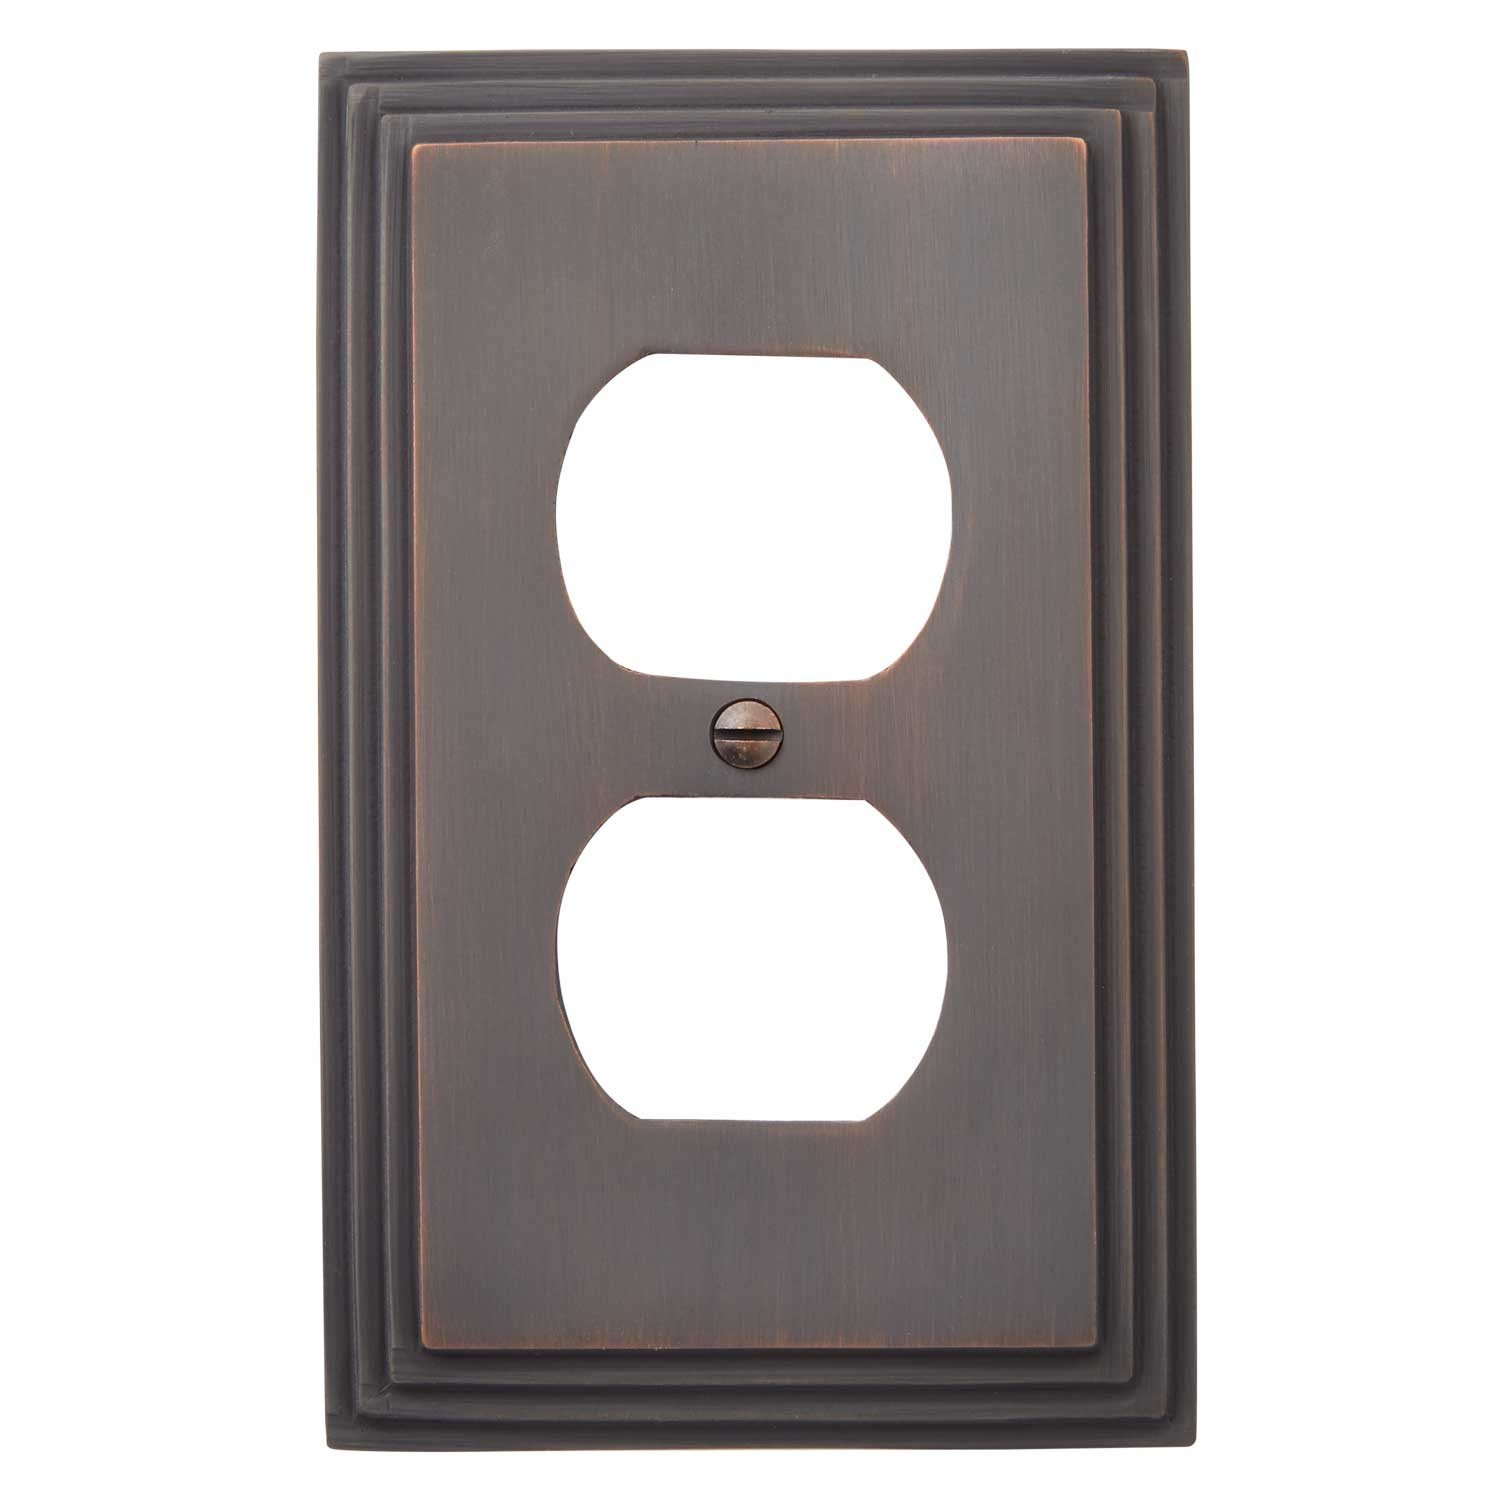 Naiture Deco Design Solid Brass Single Duplex Outlet Cover, Wall Plate, Switch Plate, Oil Rubbed Bronze Finish